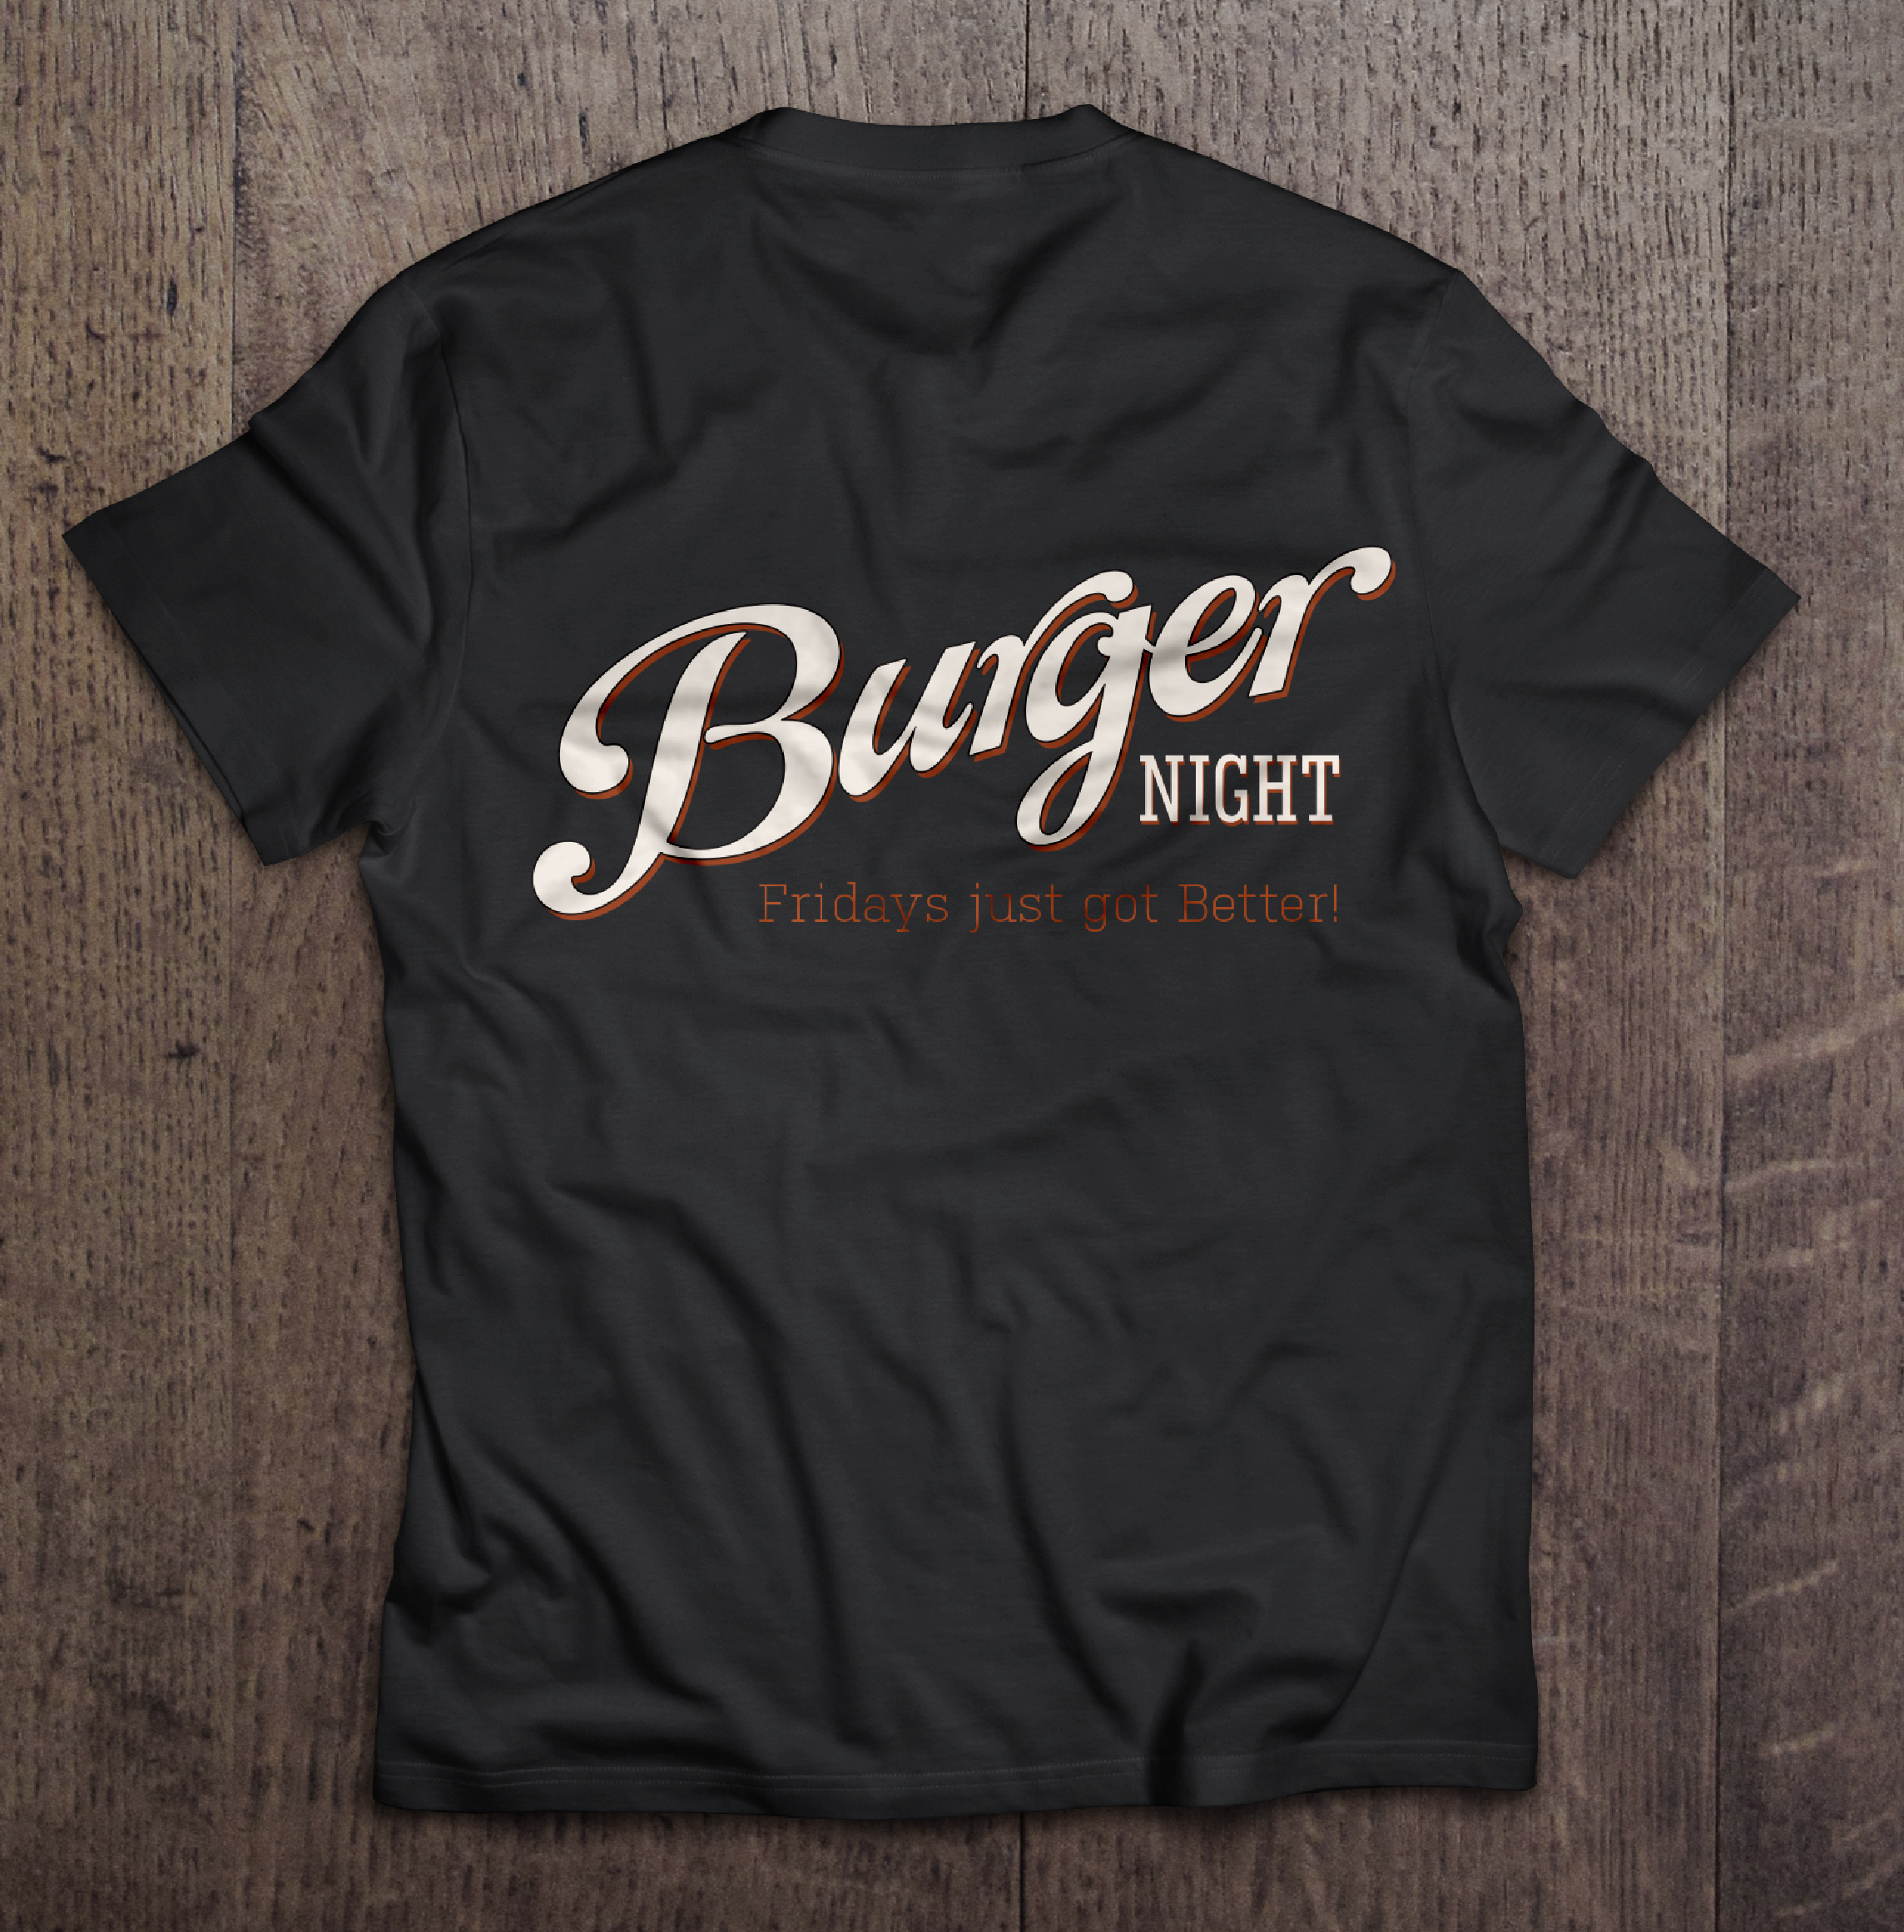 Burger night t-shirt back